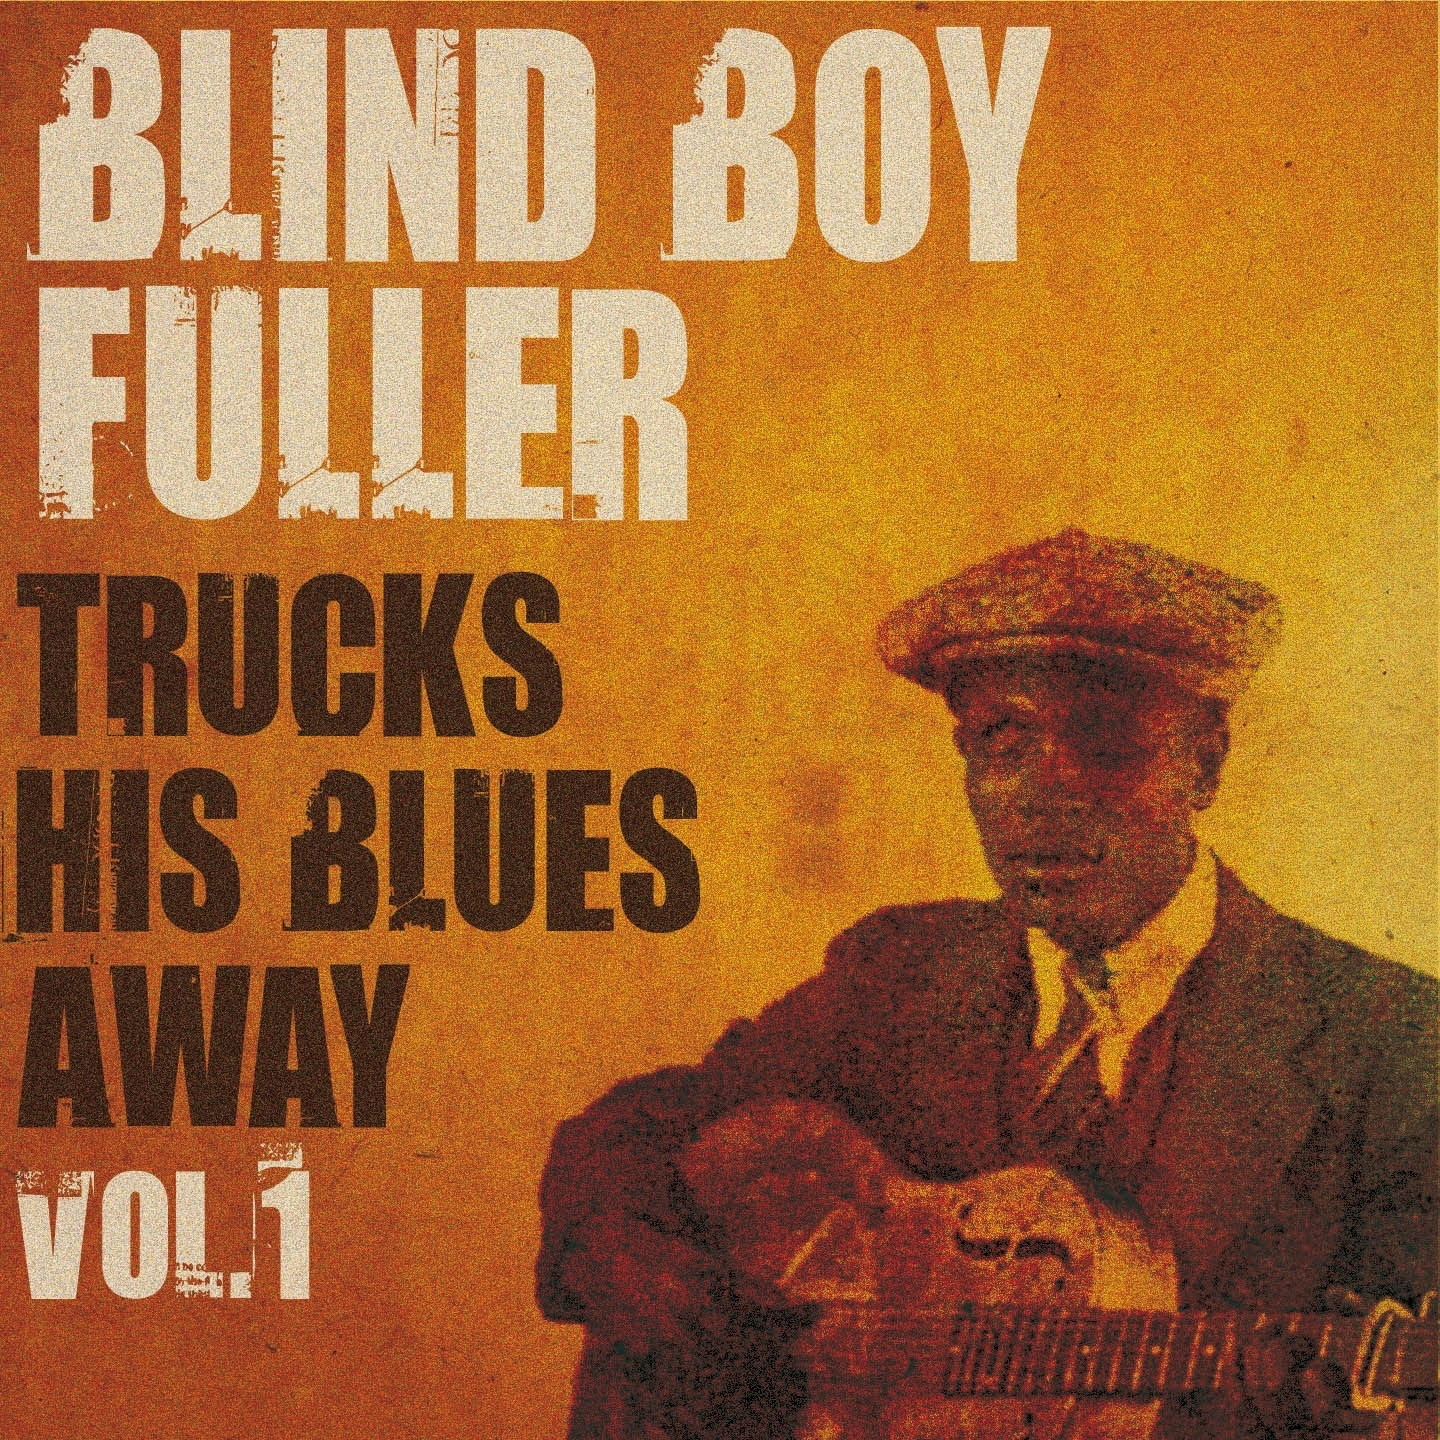 Blind Boy Fuller Trucks His Blues Away, Vol. 1